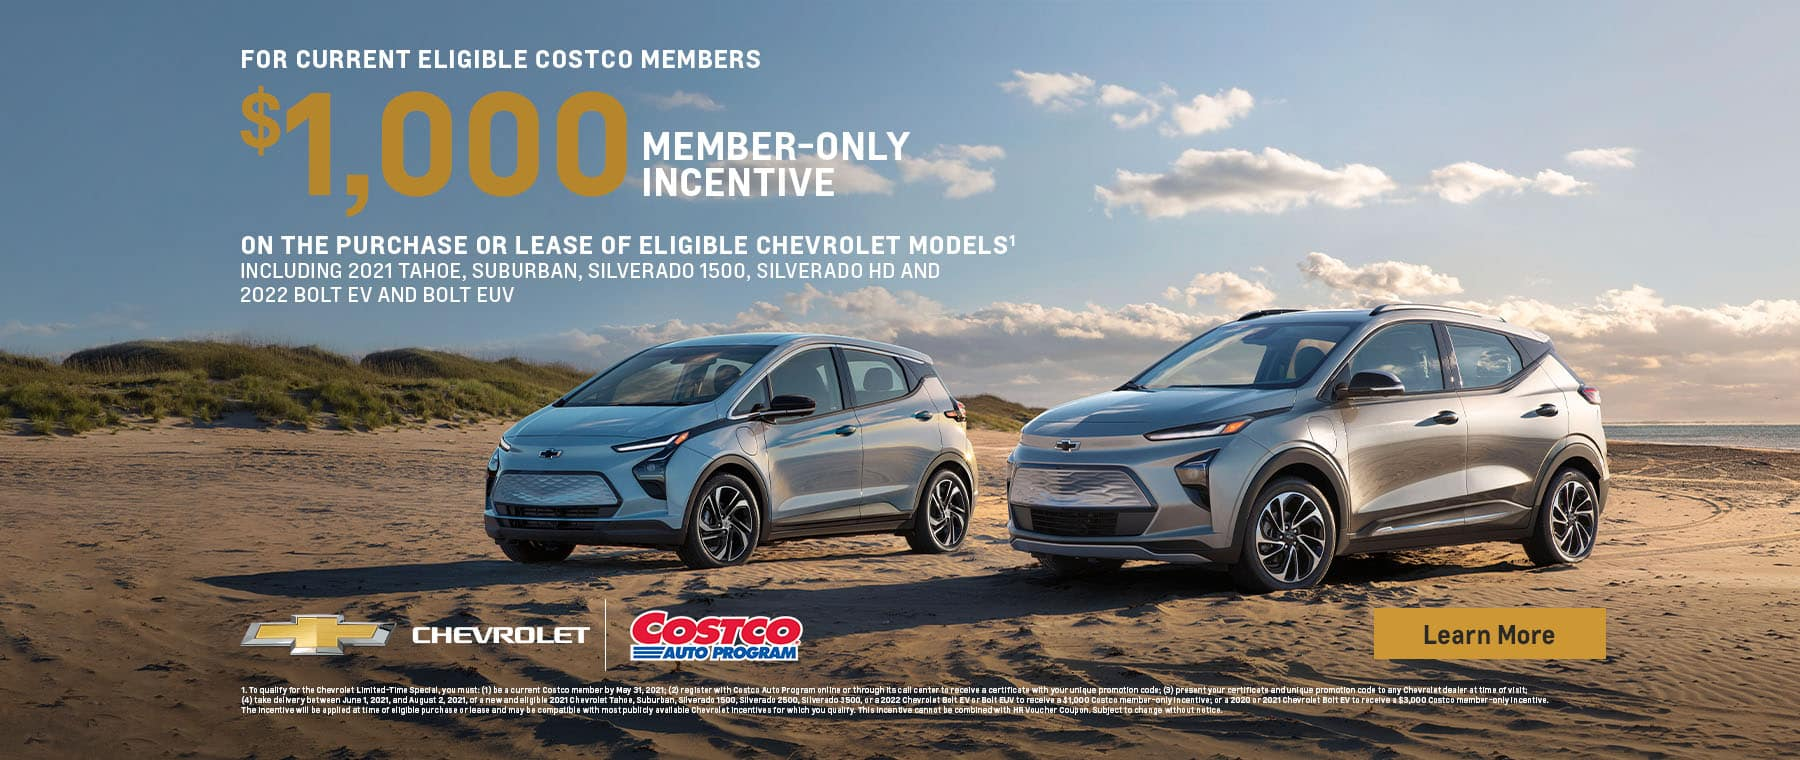 $1000 Member only incentive on purchase or lease of eligible Chevrolet Models